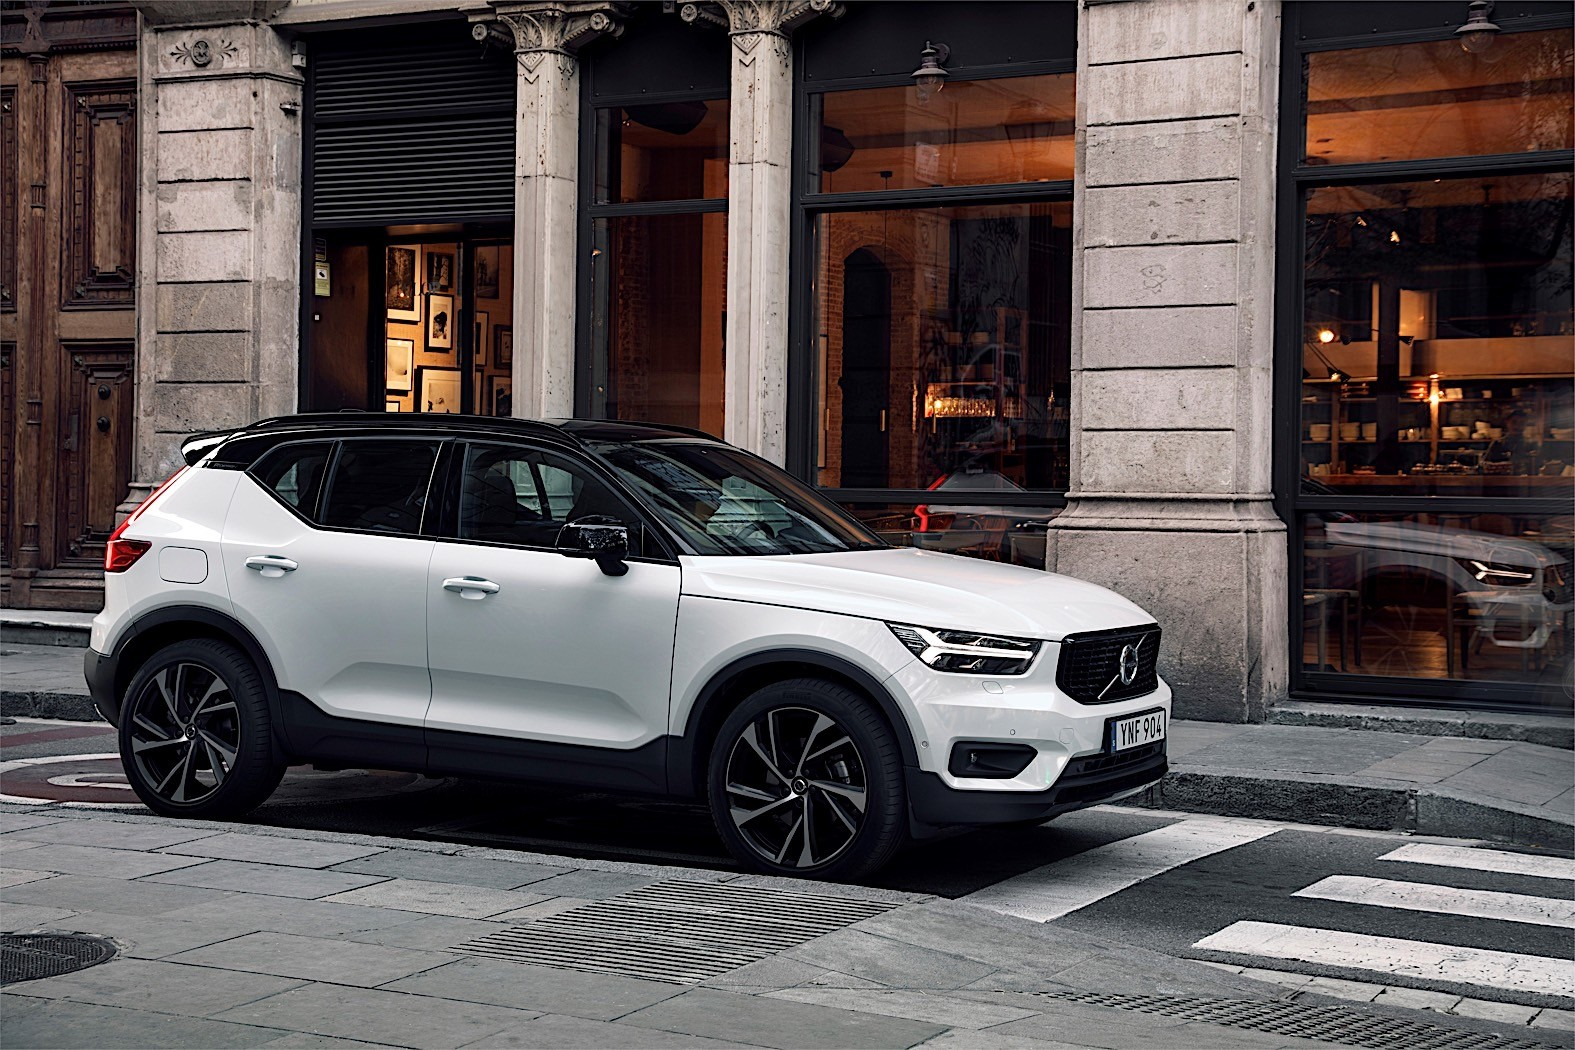 Used Bmw Suv >> Volvo XC40 Named 2018 European Car of the Year - autoevolution